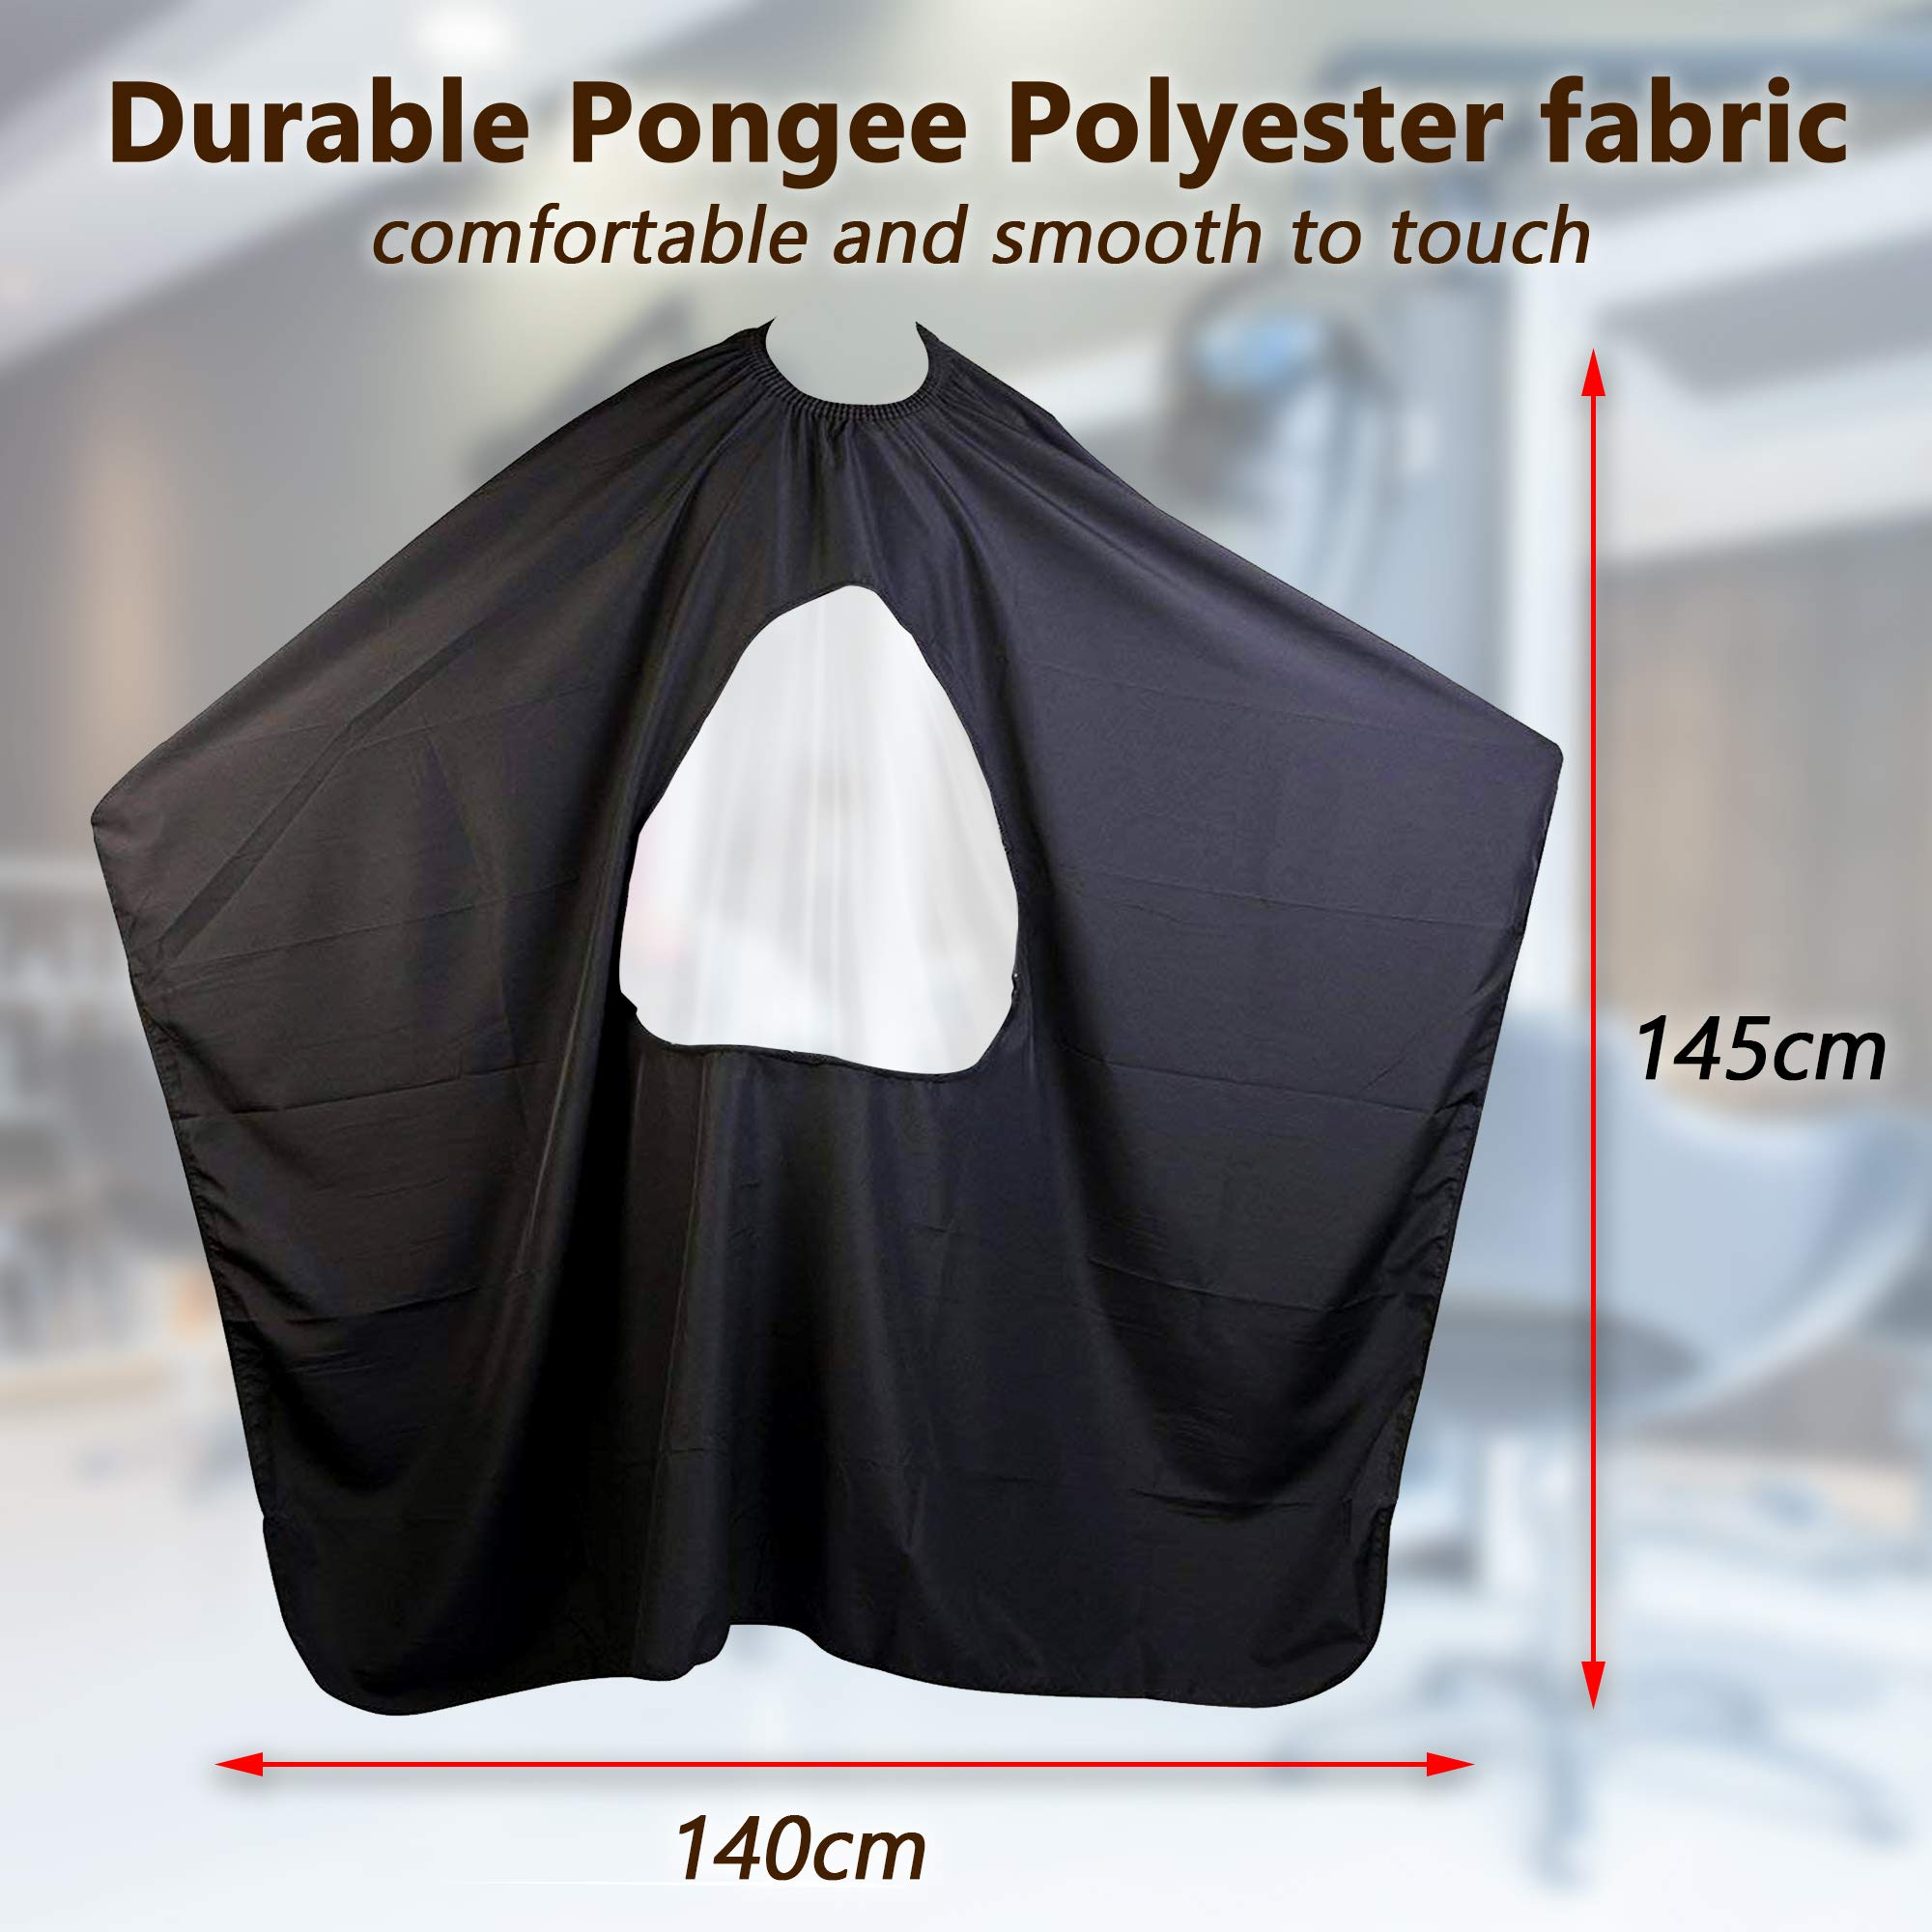 Celebrita Pack of 2 Waterproof Barber Cape for All - With Transparent Viewing Window – Perfect Salon Apron for Hair Treatment - Cutting/Coloring/Perming - All Shampoo Chemical Proof Hairdresser by Celebrita (Image #6)